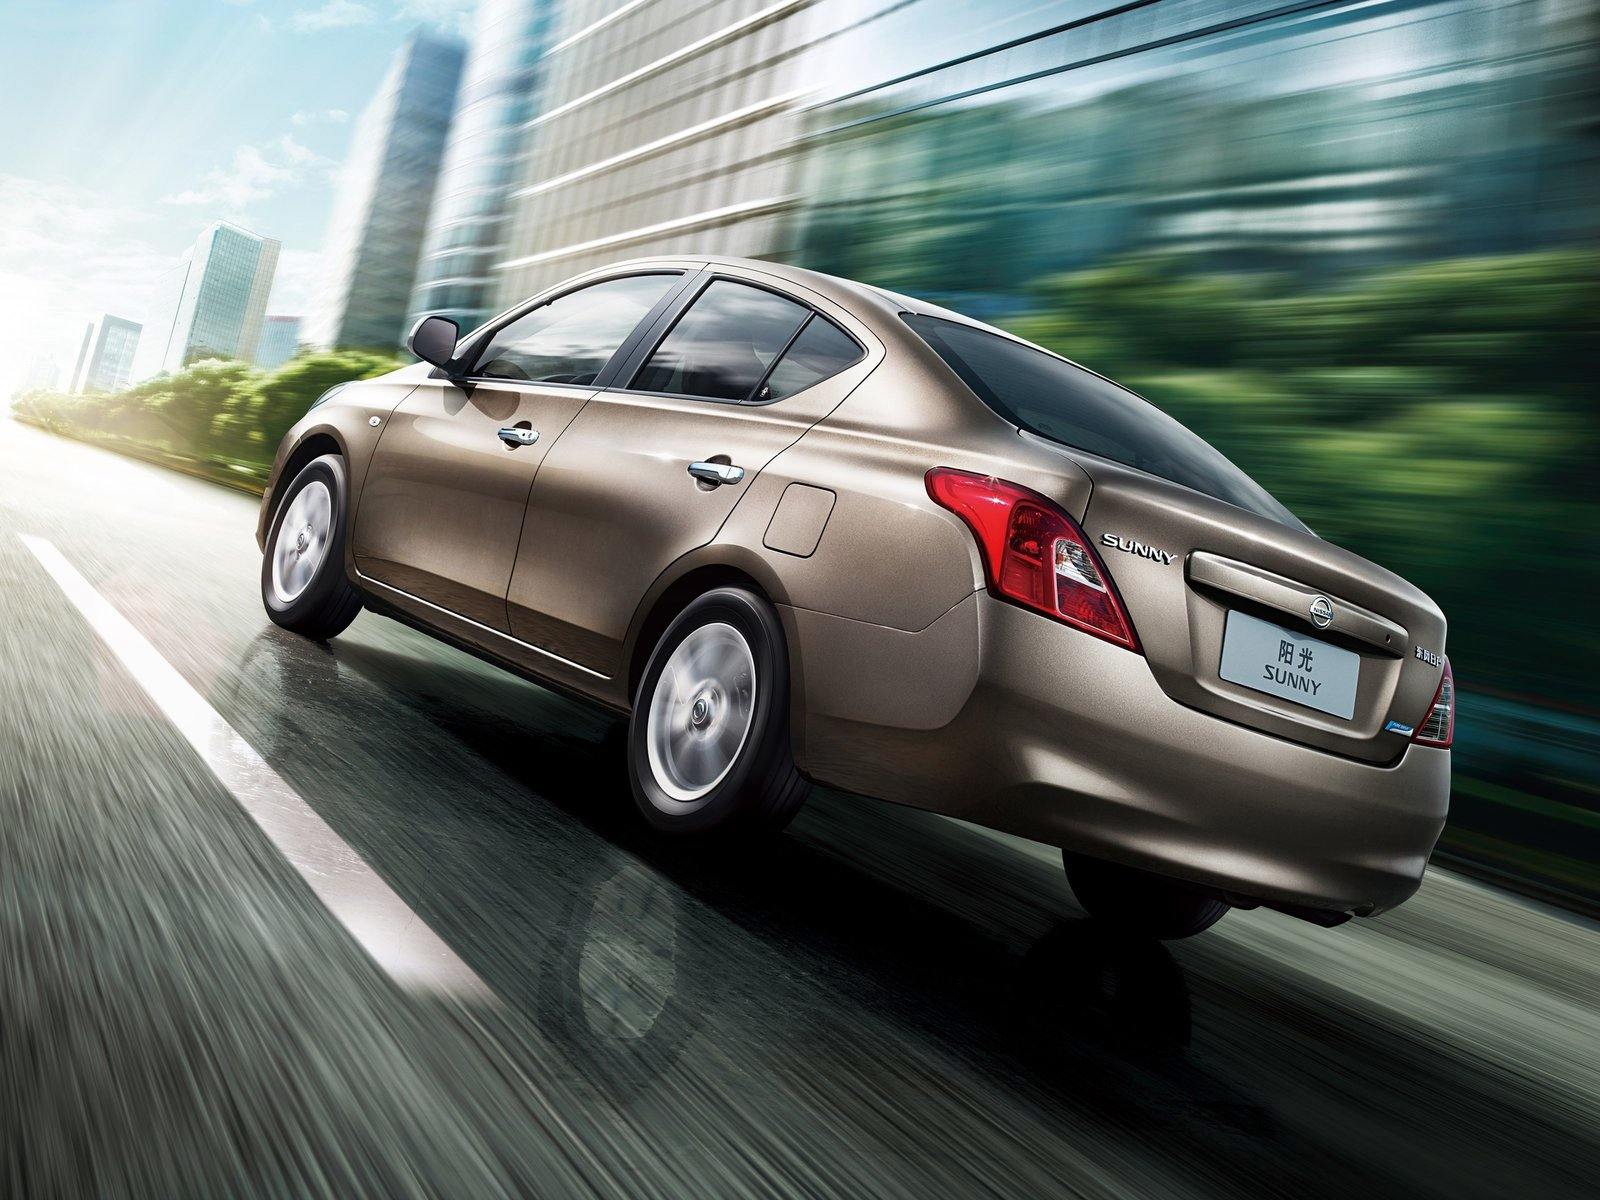 Latest 2012 Nissan Sunny Japan Car Photos Free Download